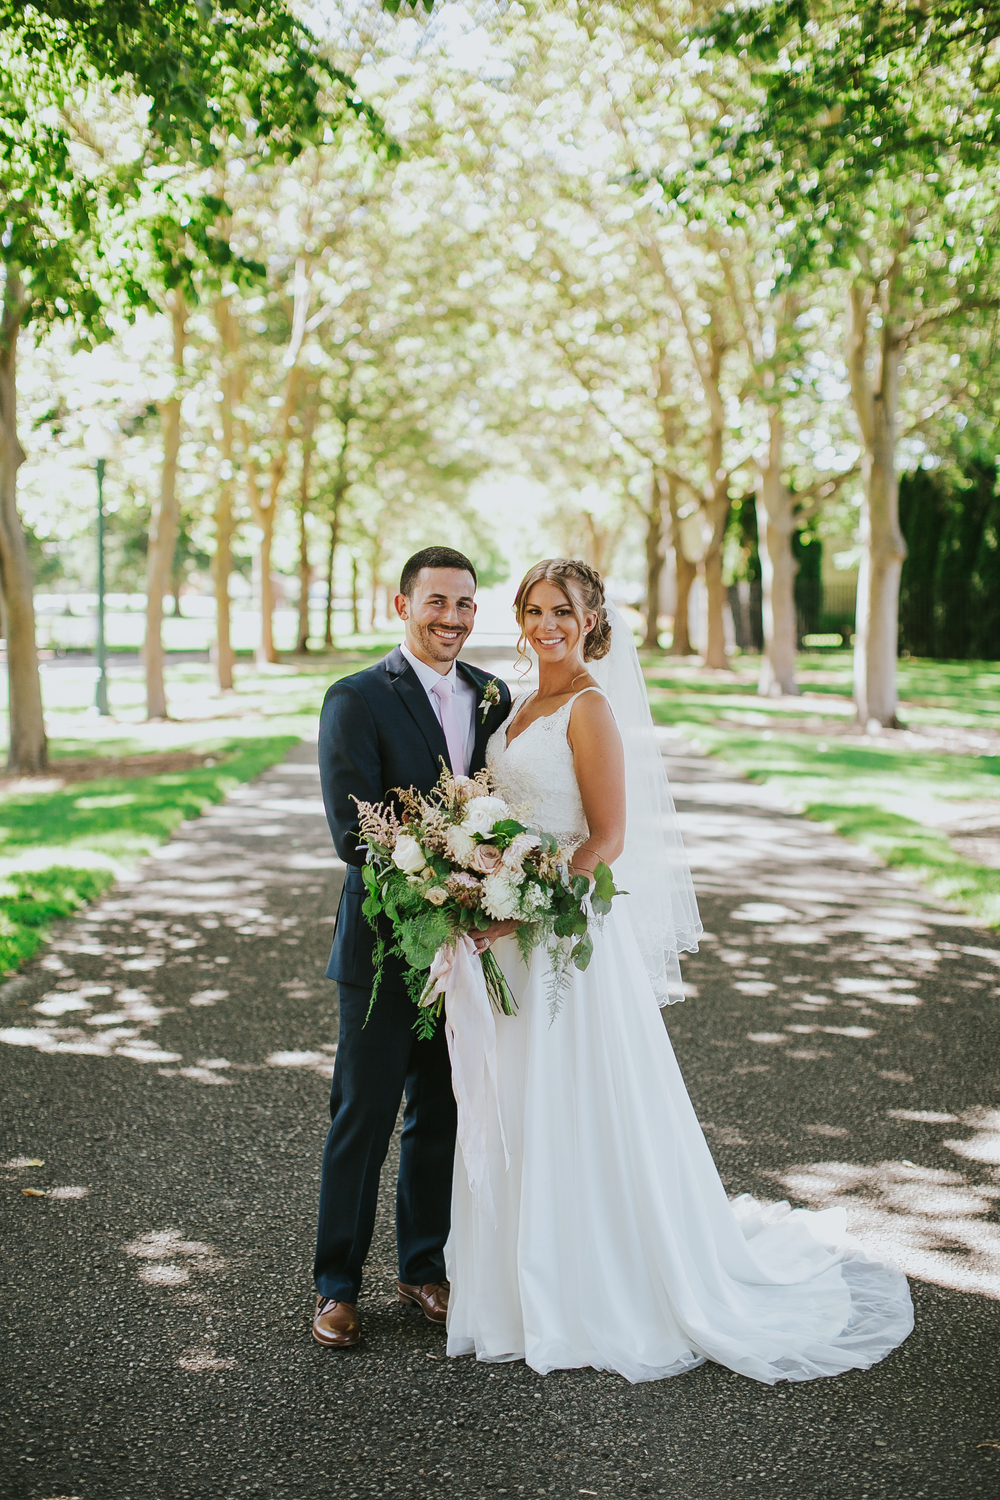 Ira and Lucy Wedding Planner and Design | Let It Shine Photography | Just So. Event Floral | Katie and Craig